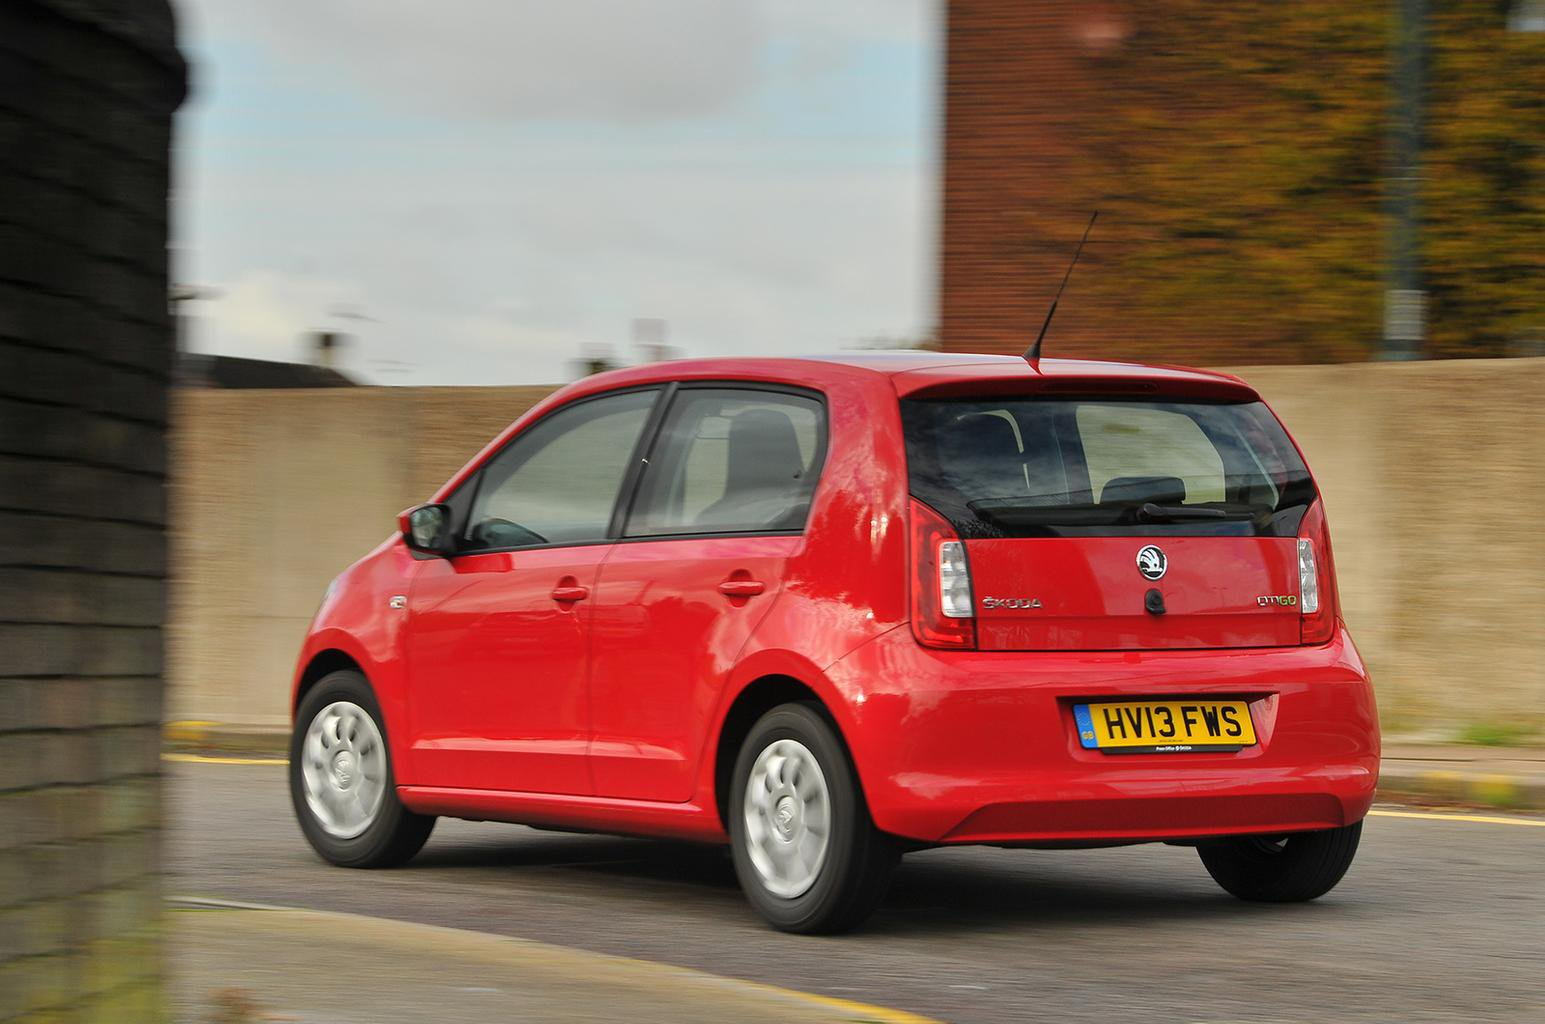 Used Skoda Citigo 12-present